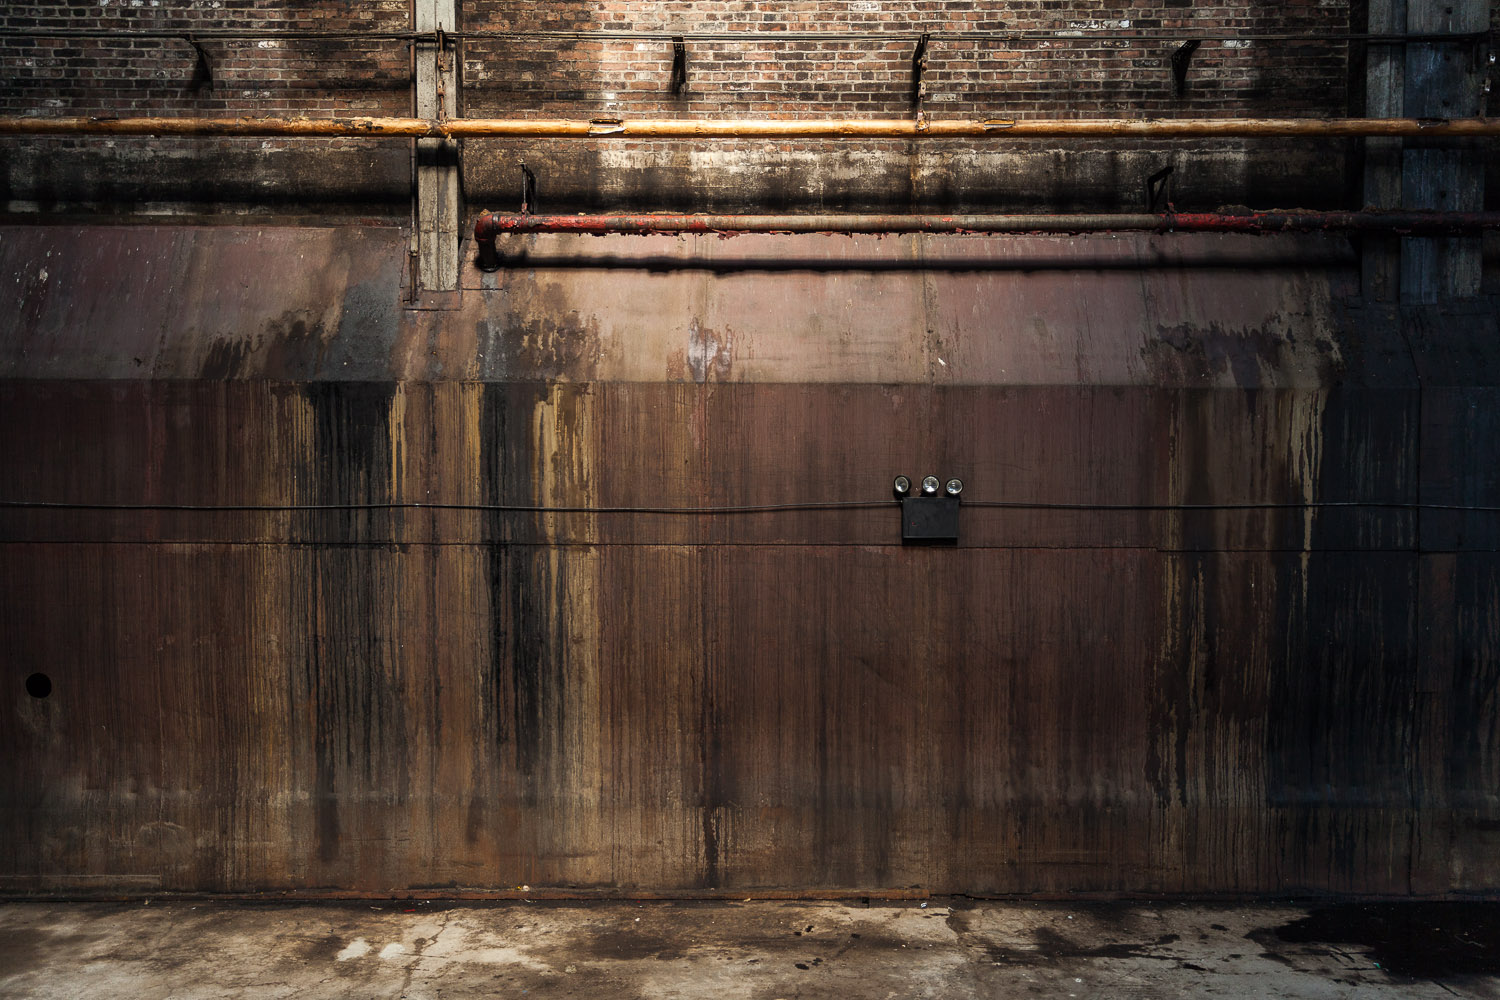 Rusted Sugar Wall, Raw Sugar Warehouse, Domino Sugar Factory